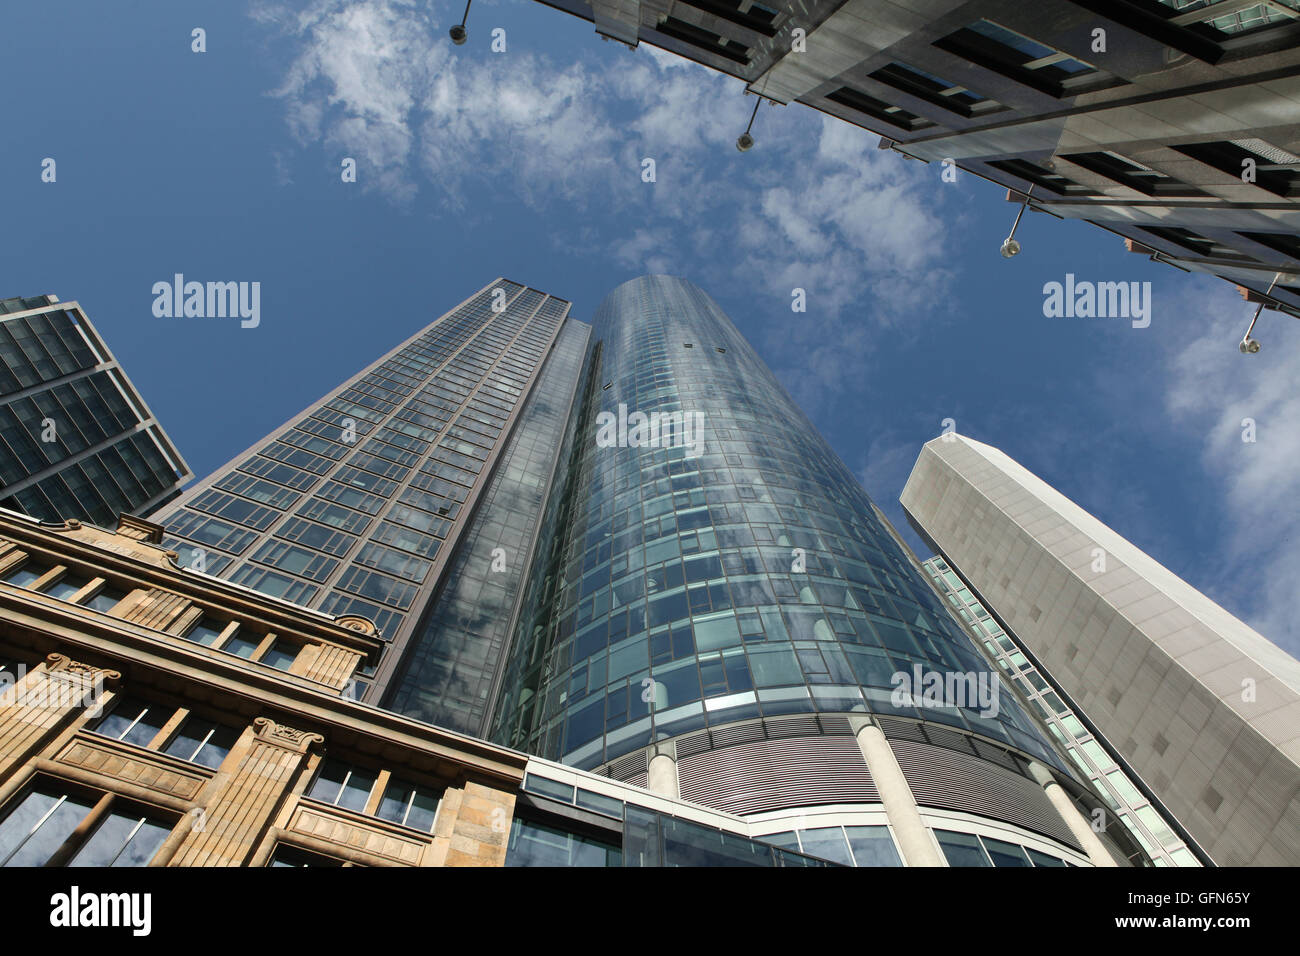 Main Tower in the Bankenviertel (banking district) in Frankfurt am Main, Hesse, Germany. - Stock Image